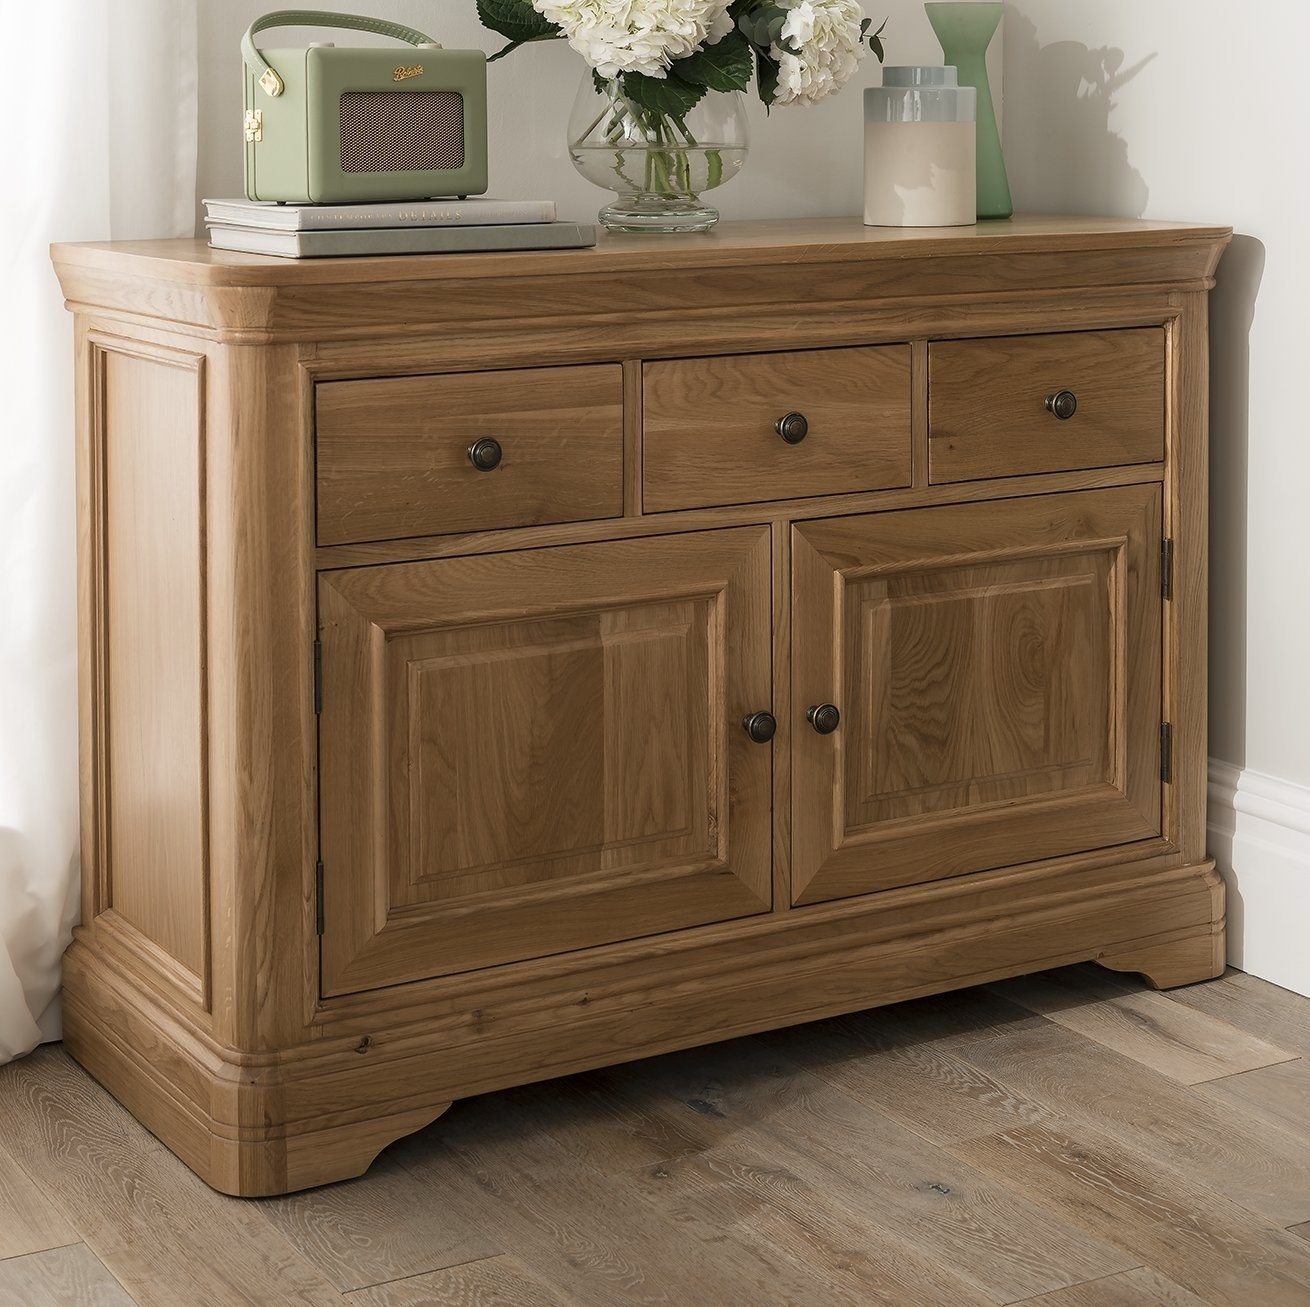 Homestead Living Rowan 2 Door 3 Drawer Sideboard | Wayfair.co.uk in Aged Pine 3-Drawer 2-Door Sideboards (Image 16 of 30)